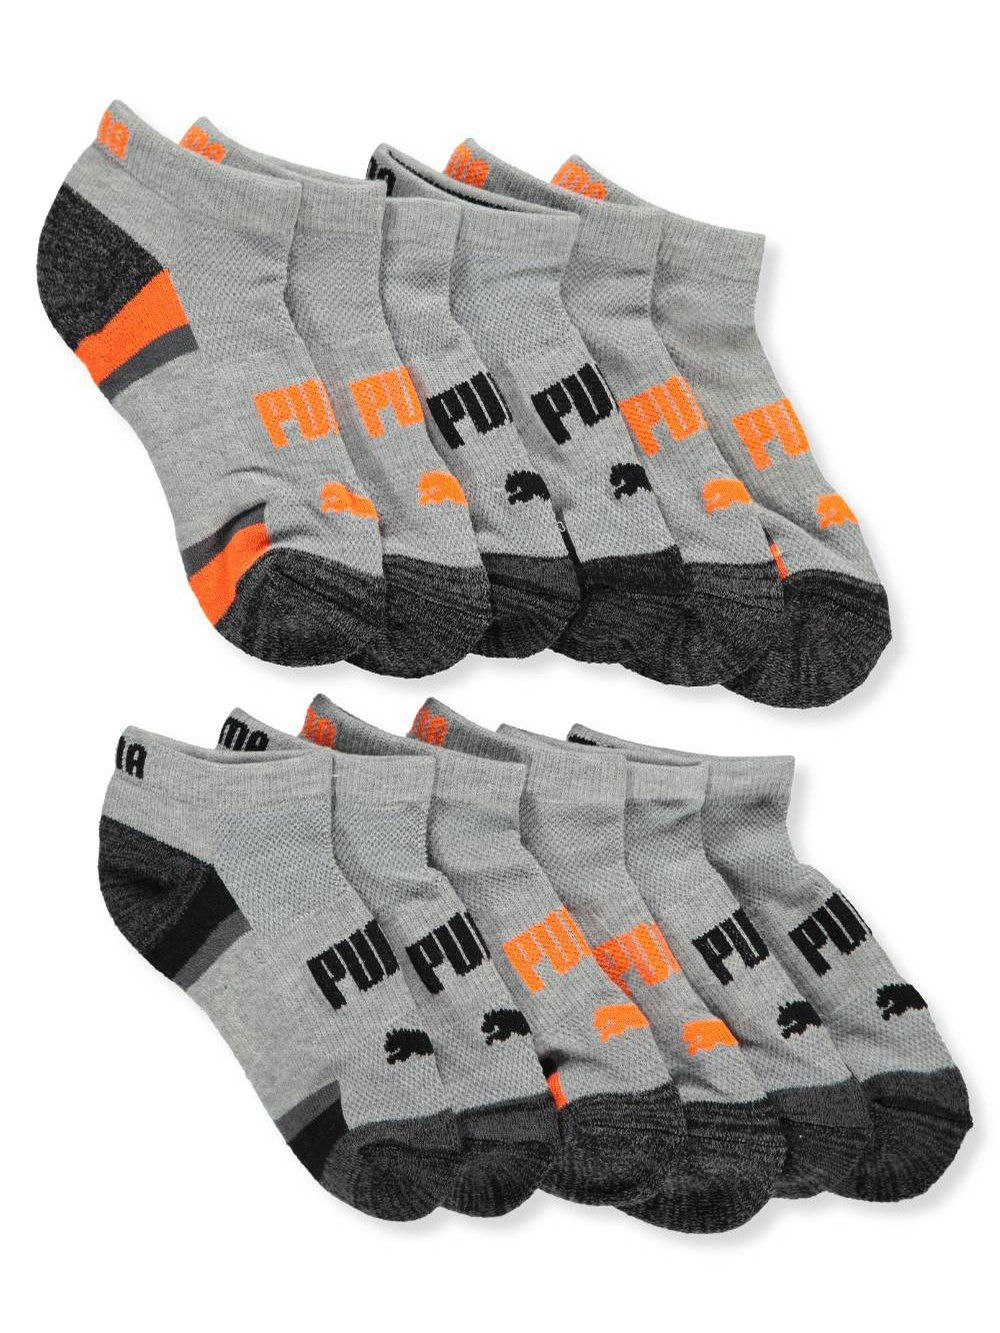 d4cc7fd4c Cheap Puma Socks, find Puma Socks deals on line at Alibaba.com